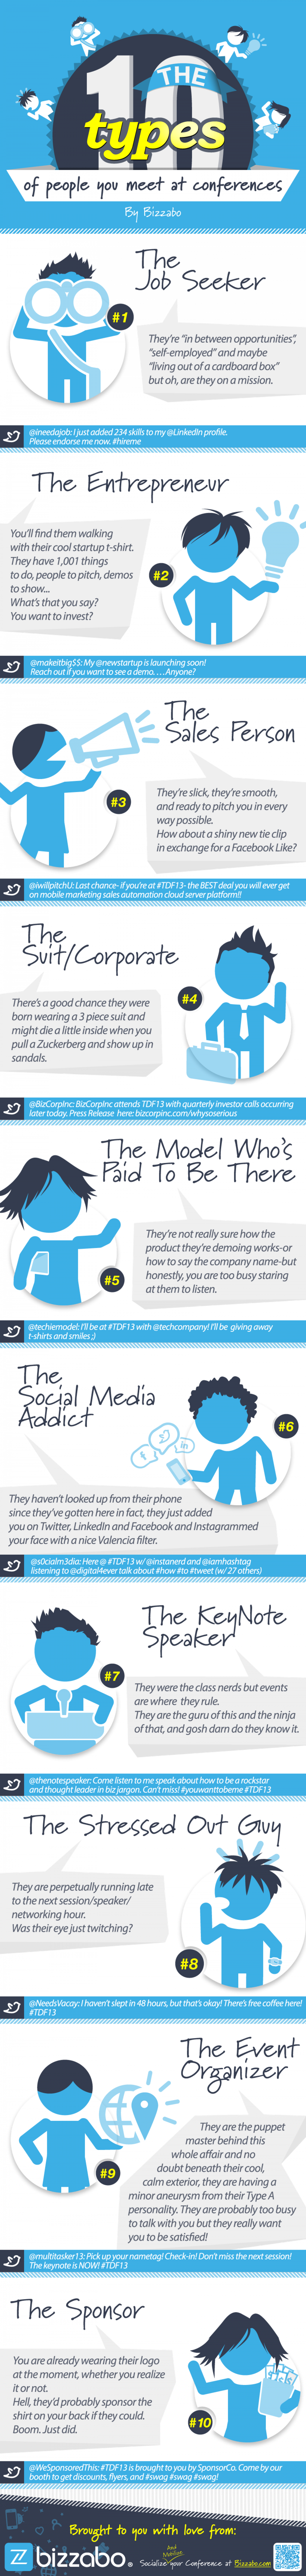 The 10 Types of People You Meet at Conferences by Bizzabo Infographic